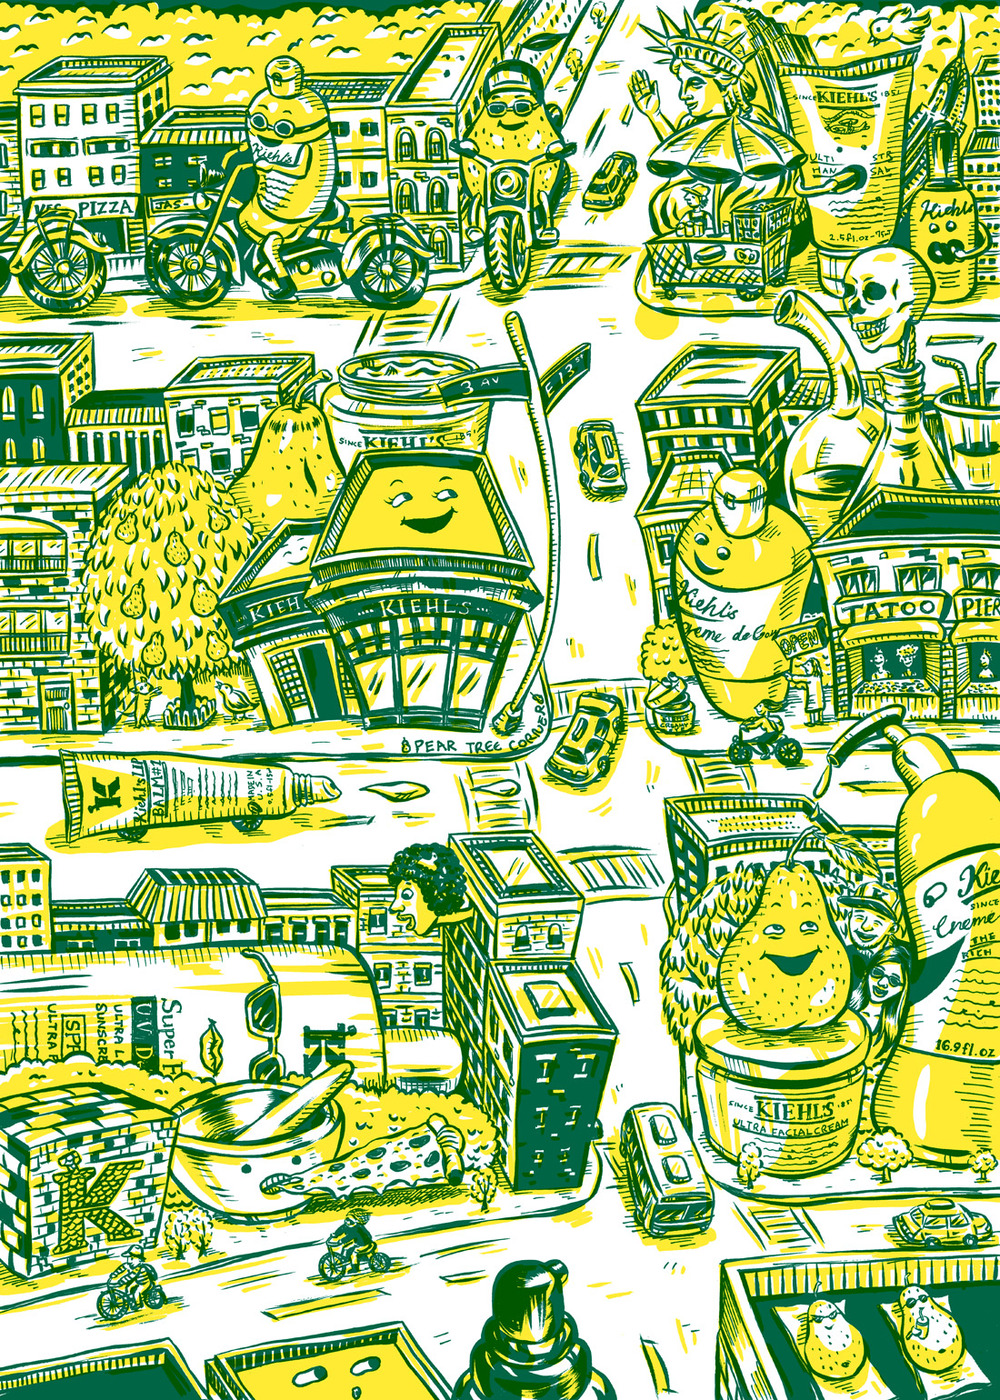 HOW 2013, SOI 55 2012 - ARTIST: Jungyeon RohTITLE: Map [Series, 1 of 2]CLIENT: Kiehl's